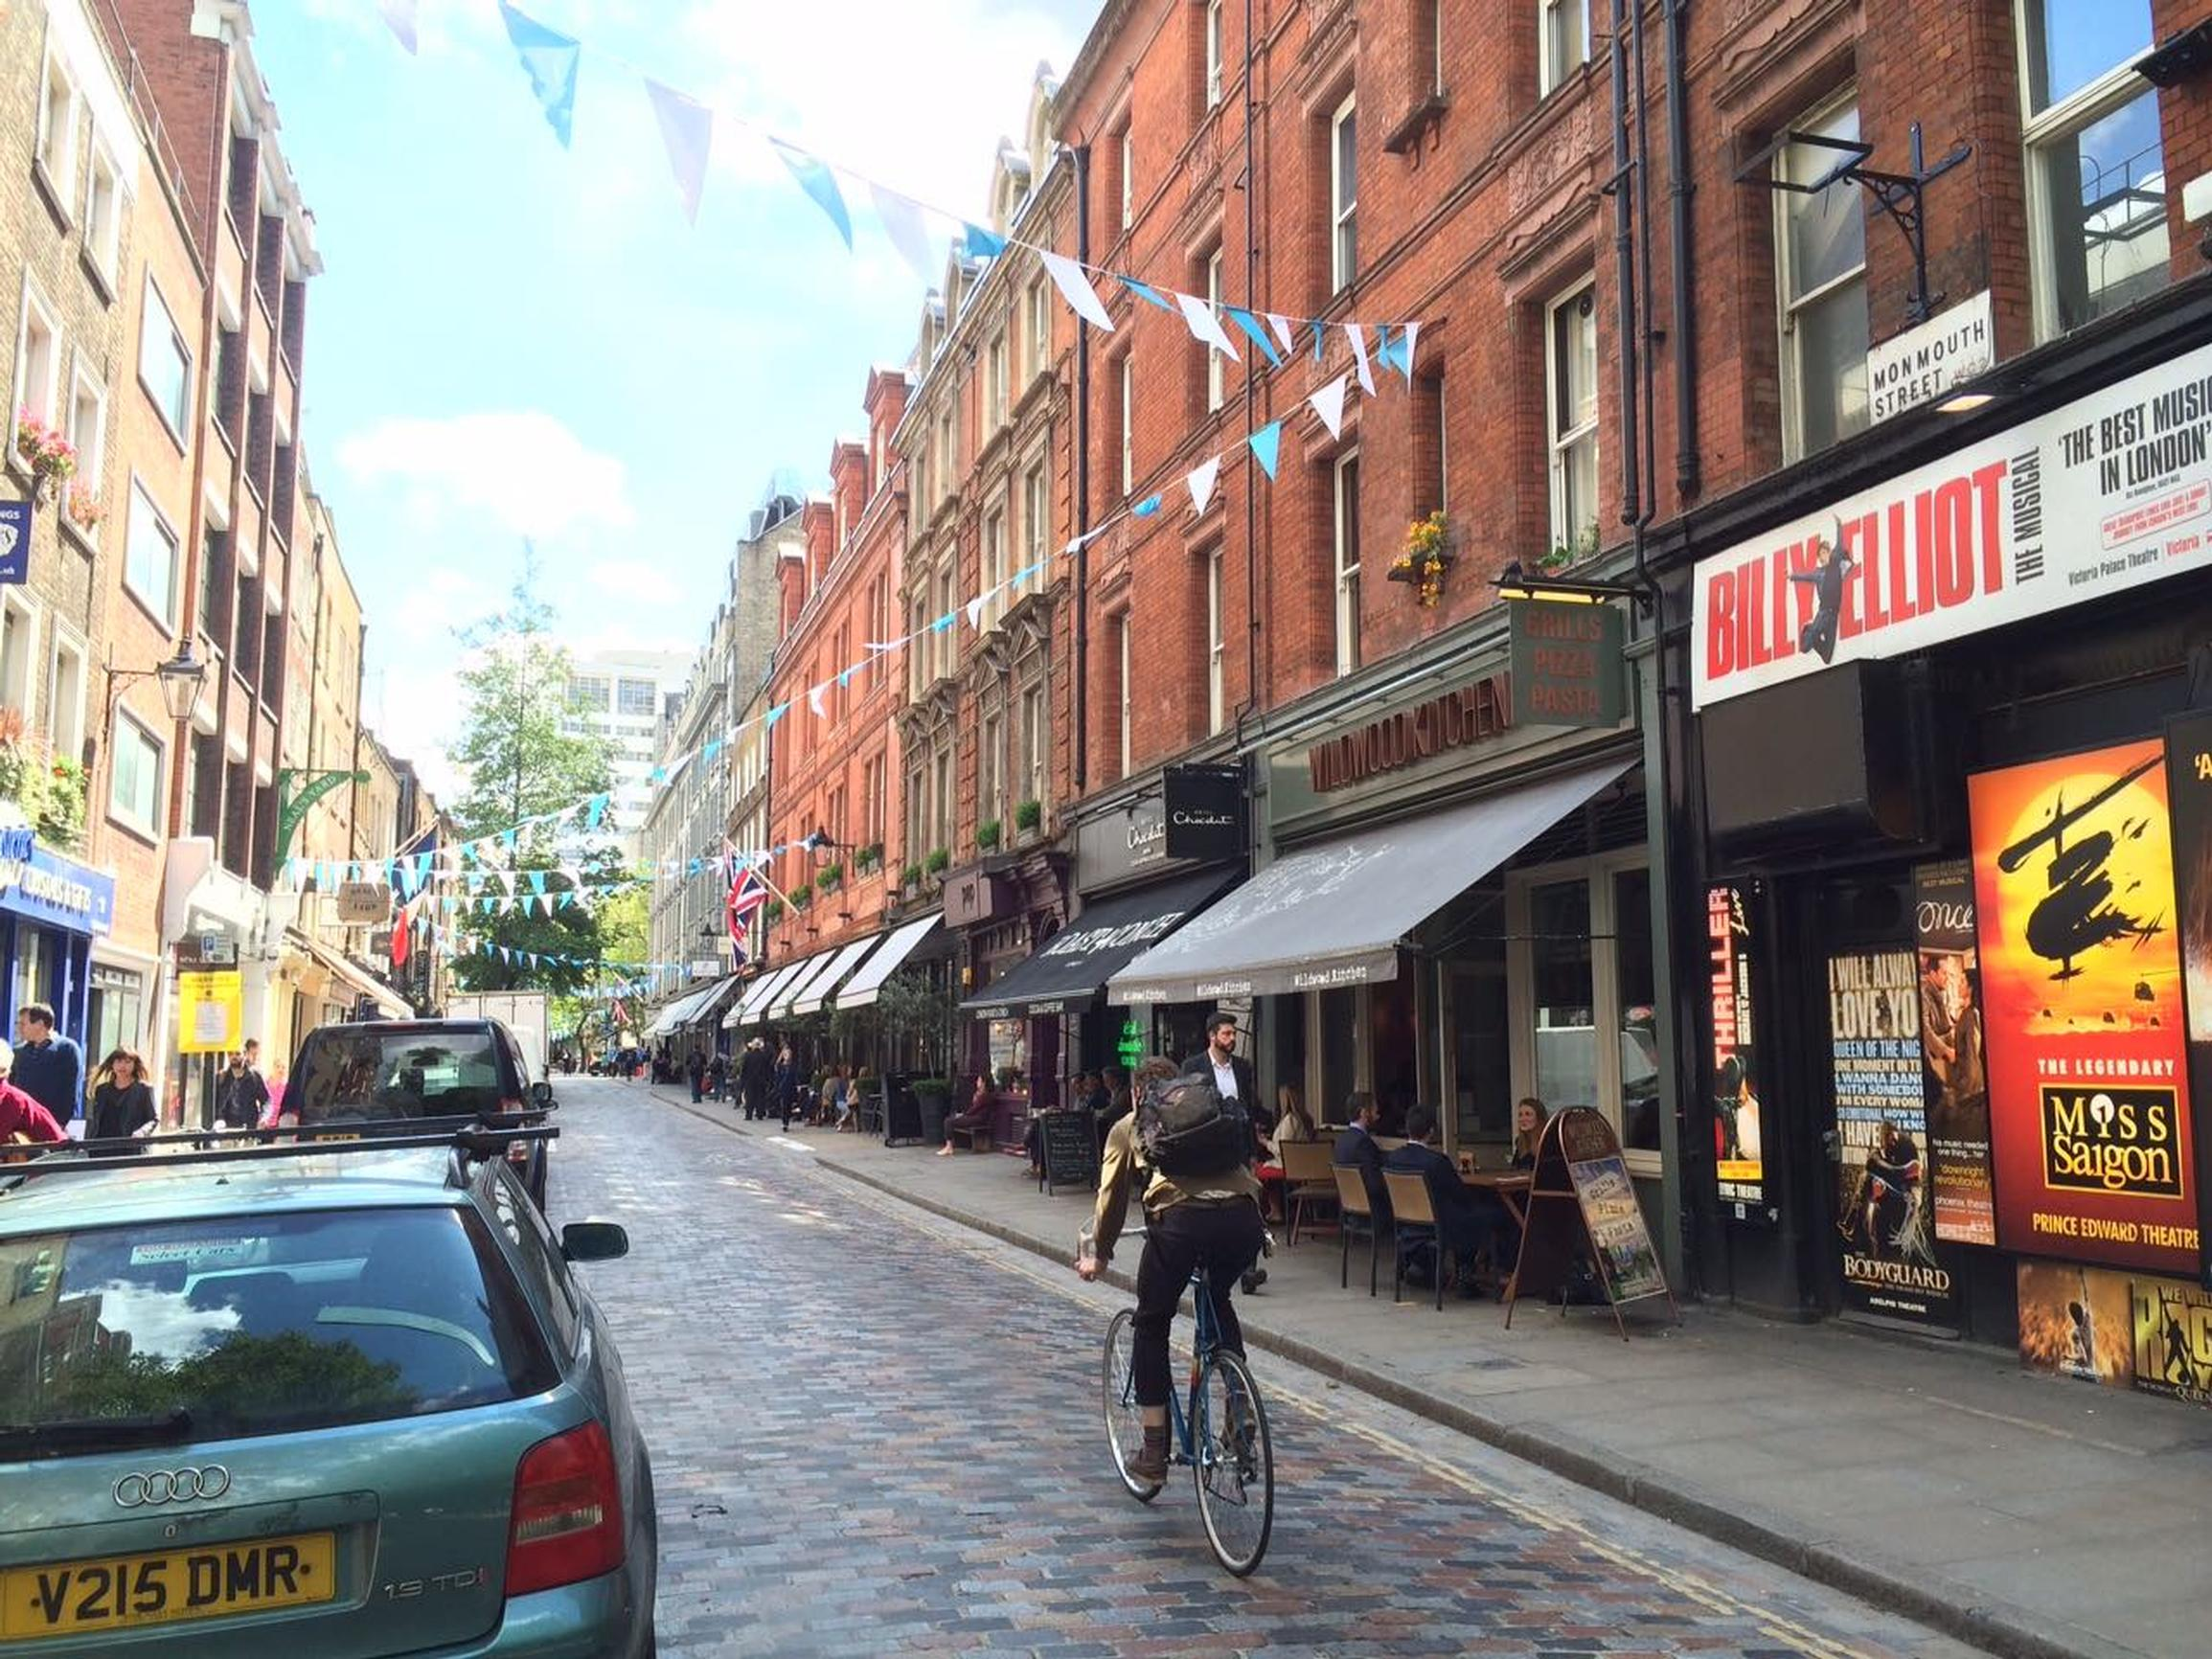 Seven Dials near Covent Garden: a good example of a humane and safe shared space